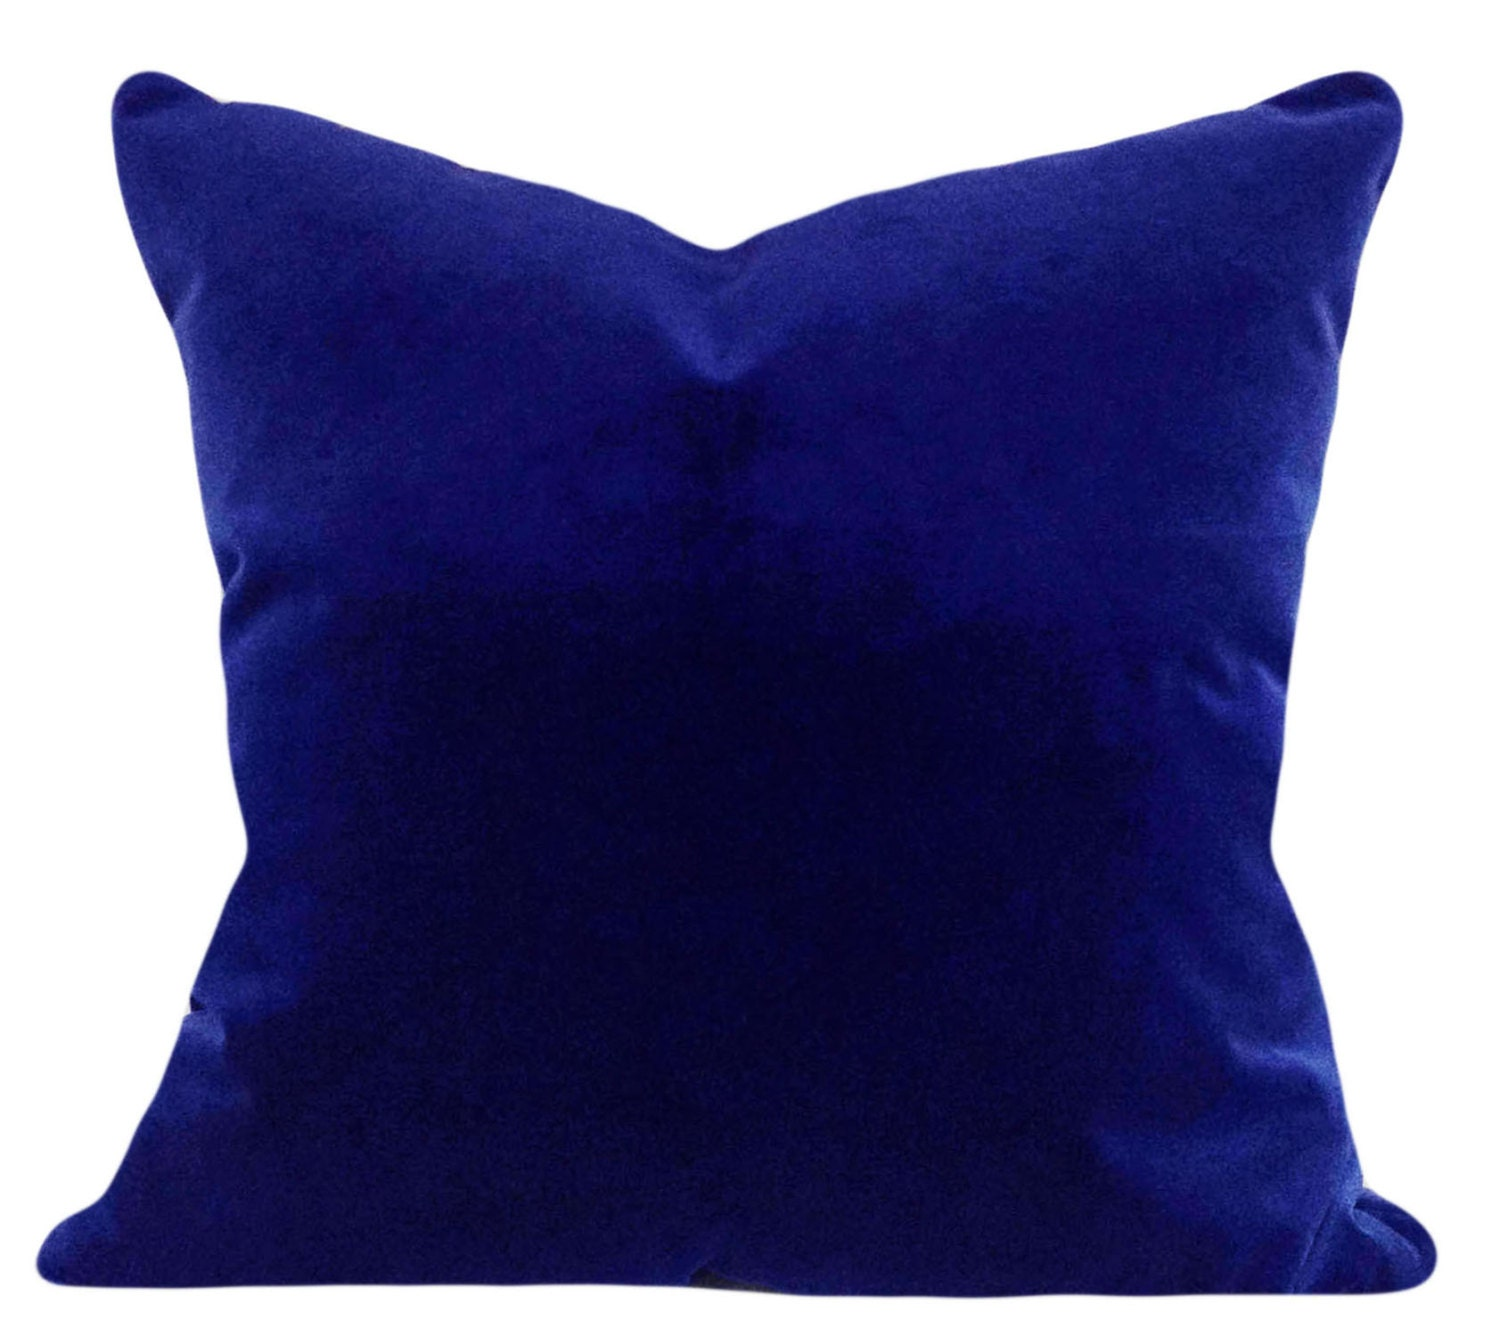 Throw Pillows Velvet : Royal Blue Velvet Decorative Pillow Cover by PillowTimeGirls